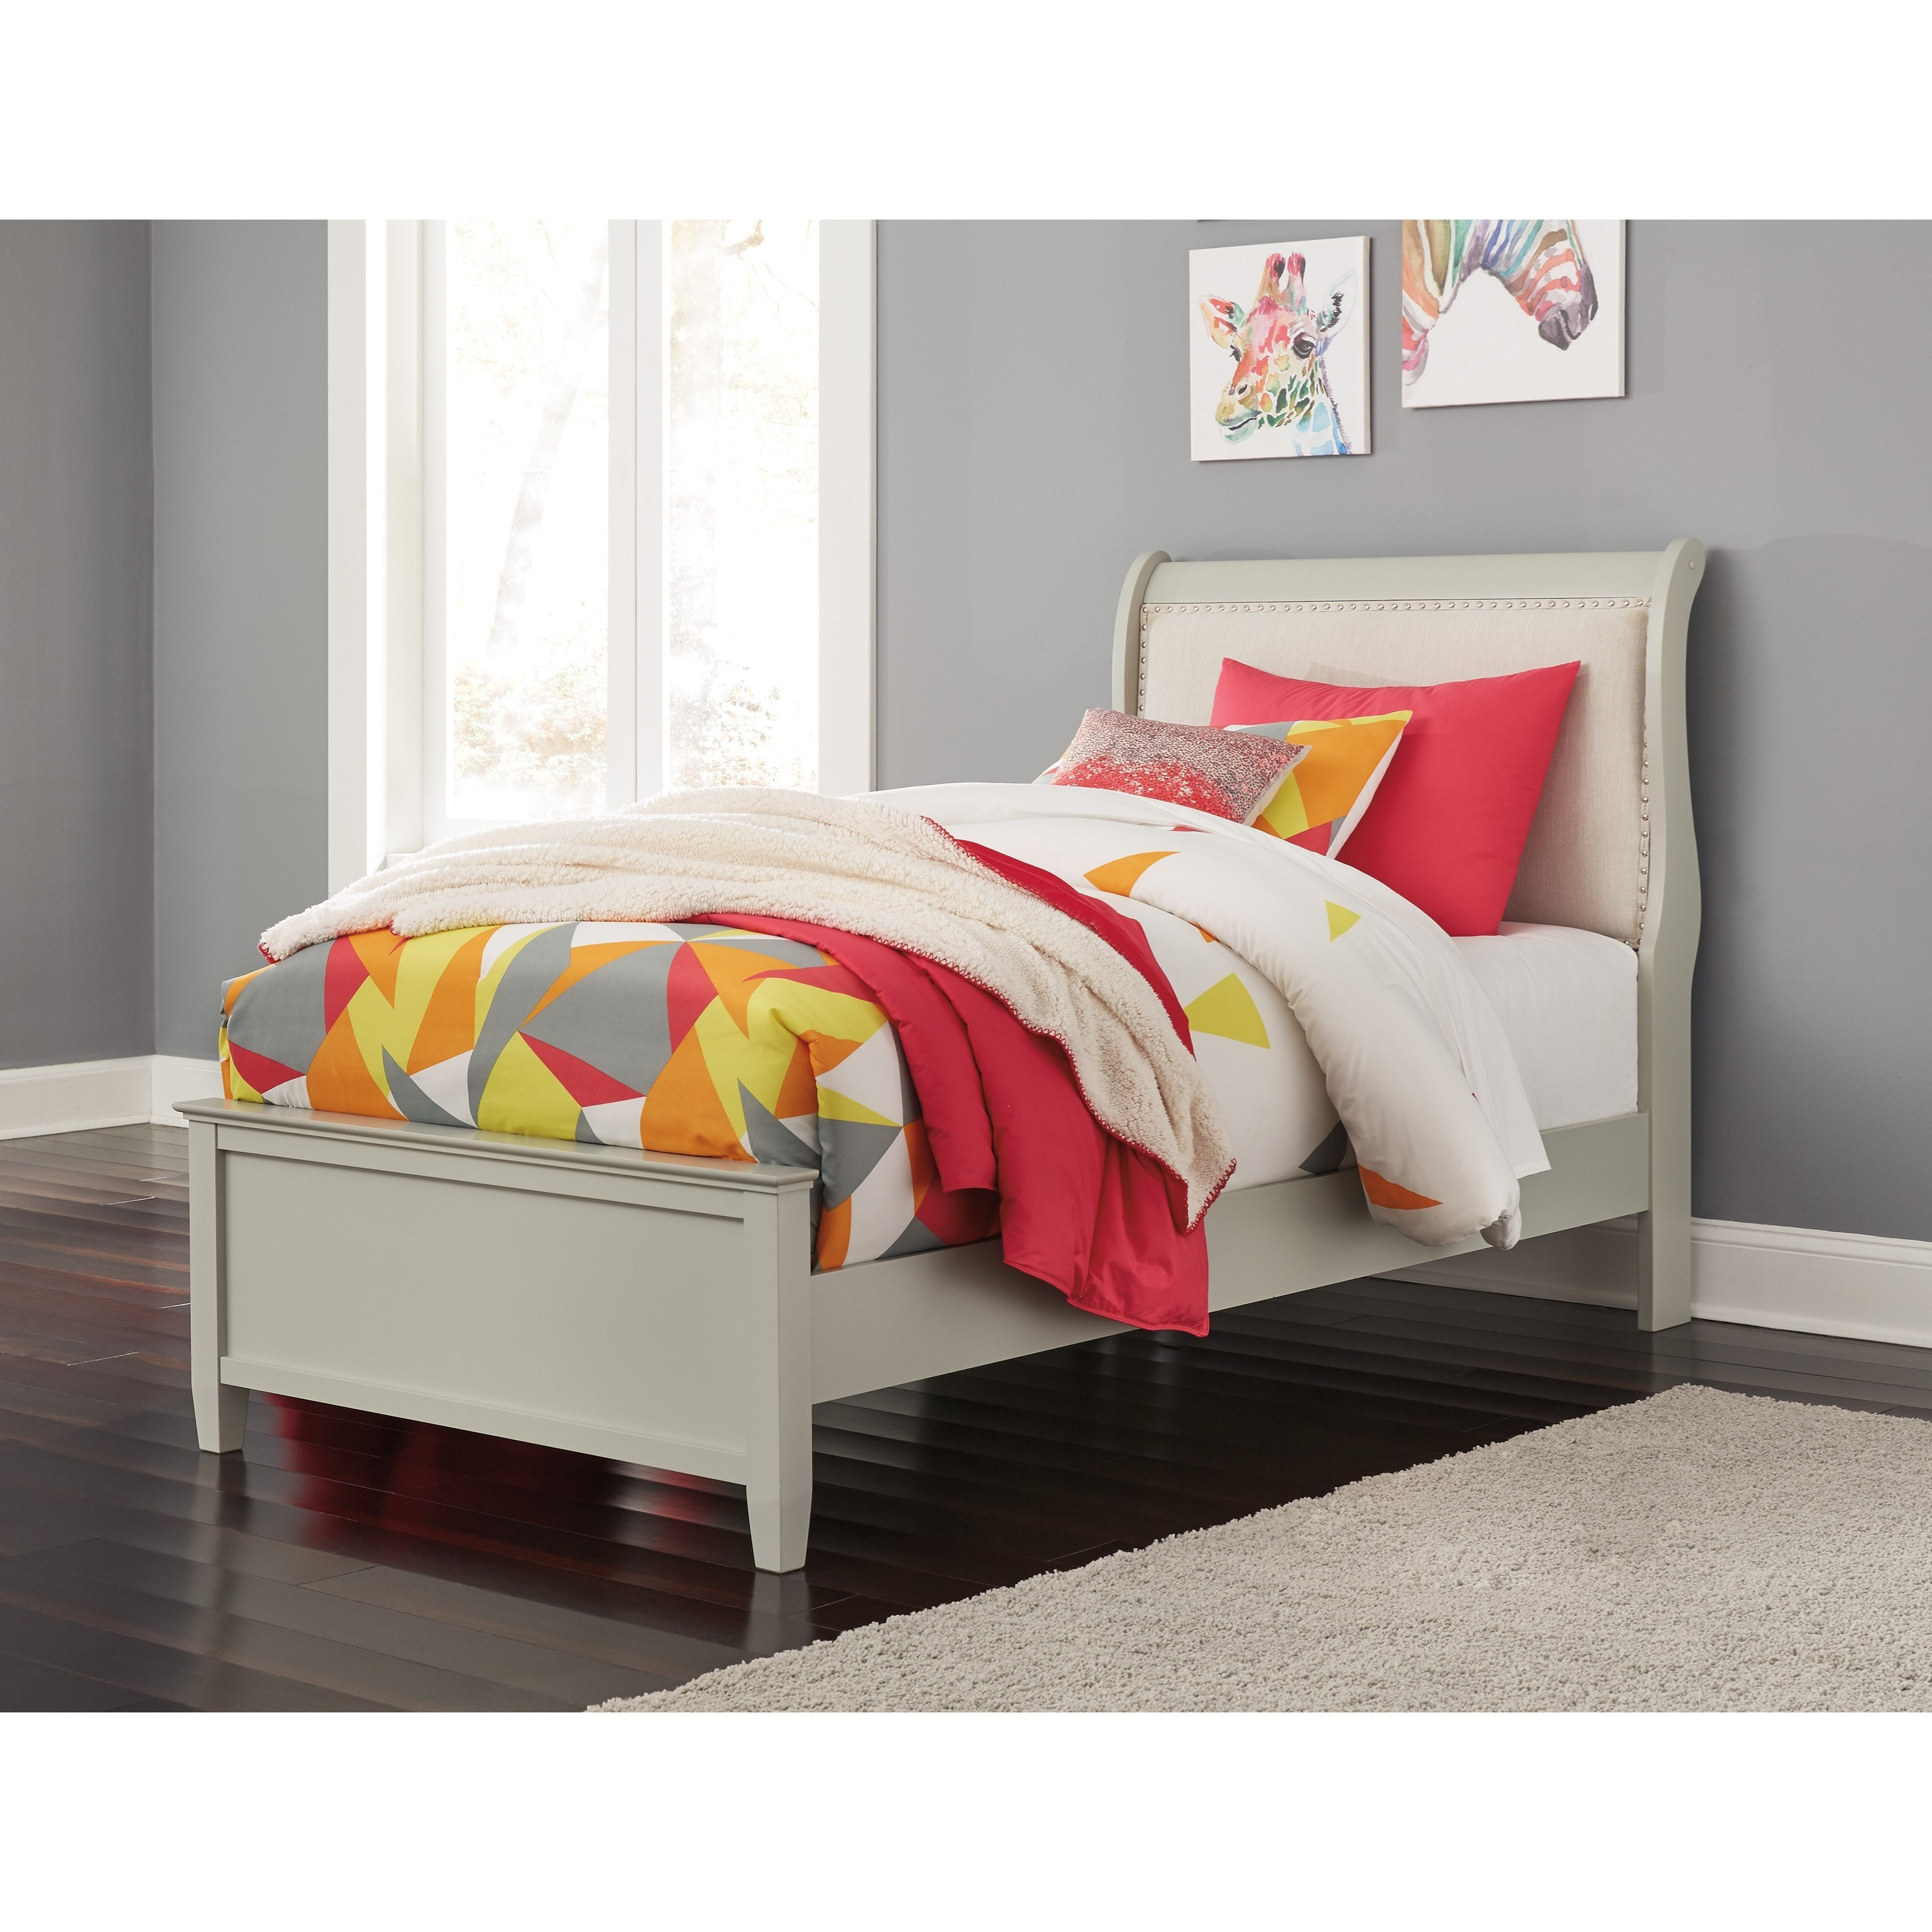 Jorstad Twin Upholstered Sleigh Bed by Ashley (Signature Design) at Johnny Janosik